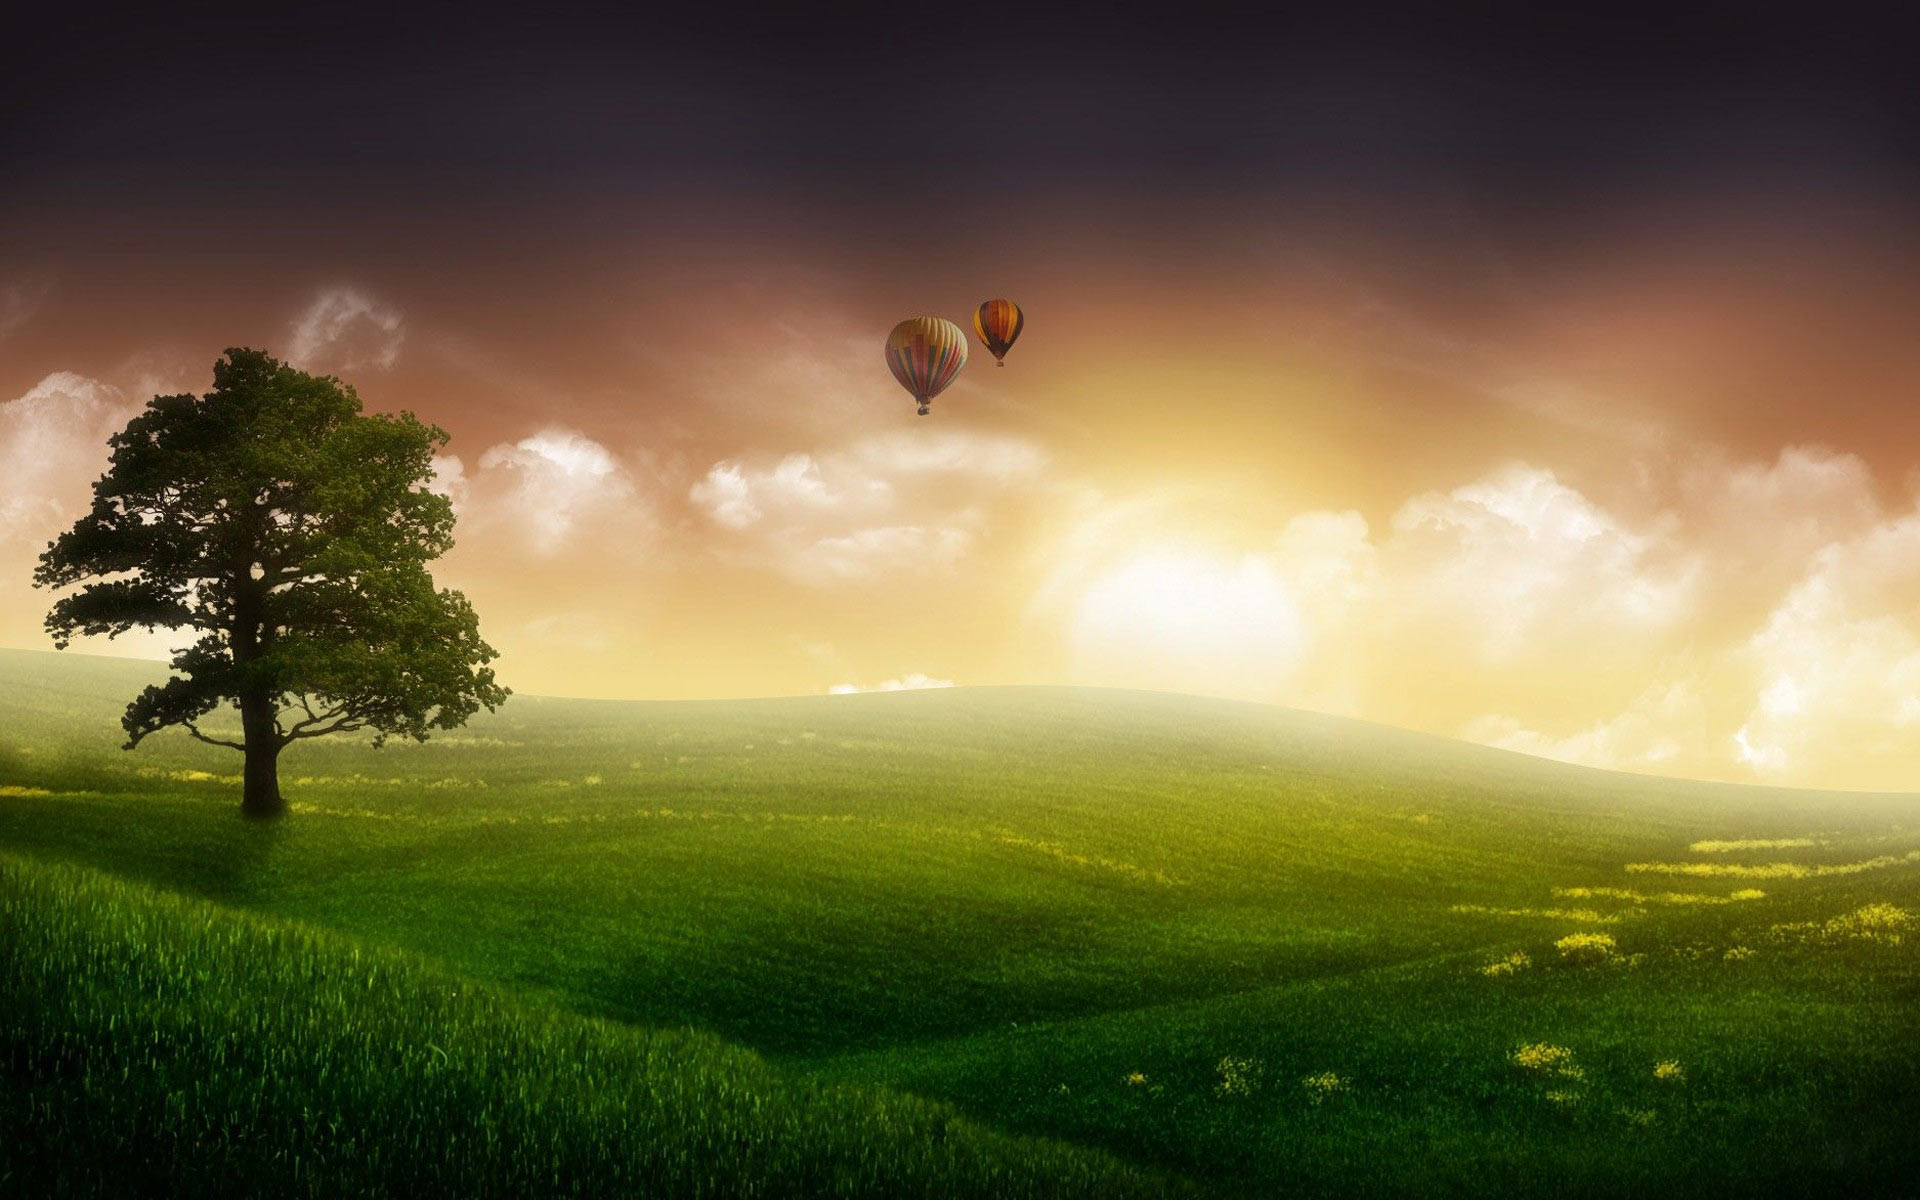 Balloon travel High Definition Wallpaper HD Resolution 1920x1200 1920x1200